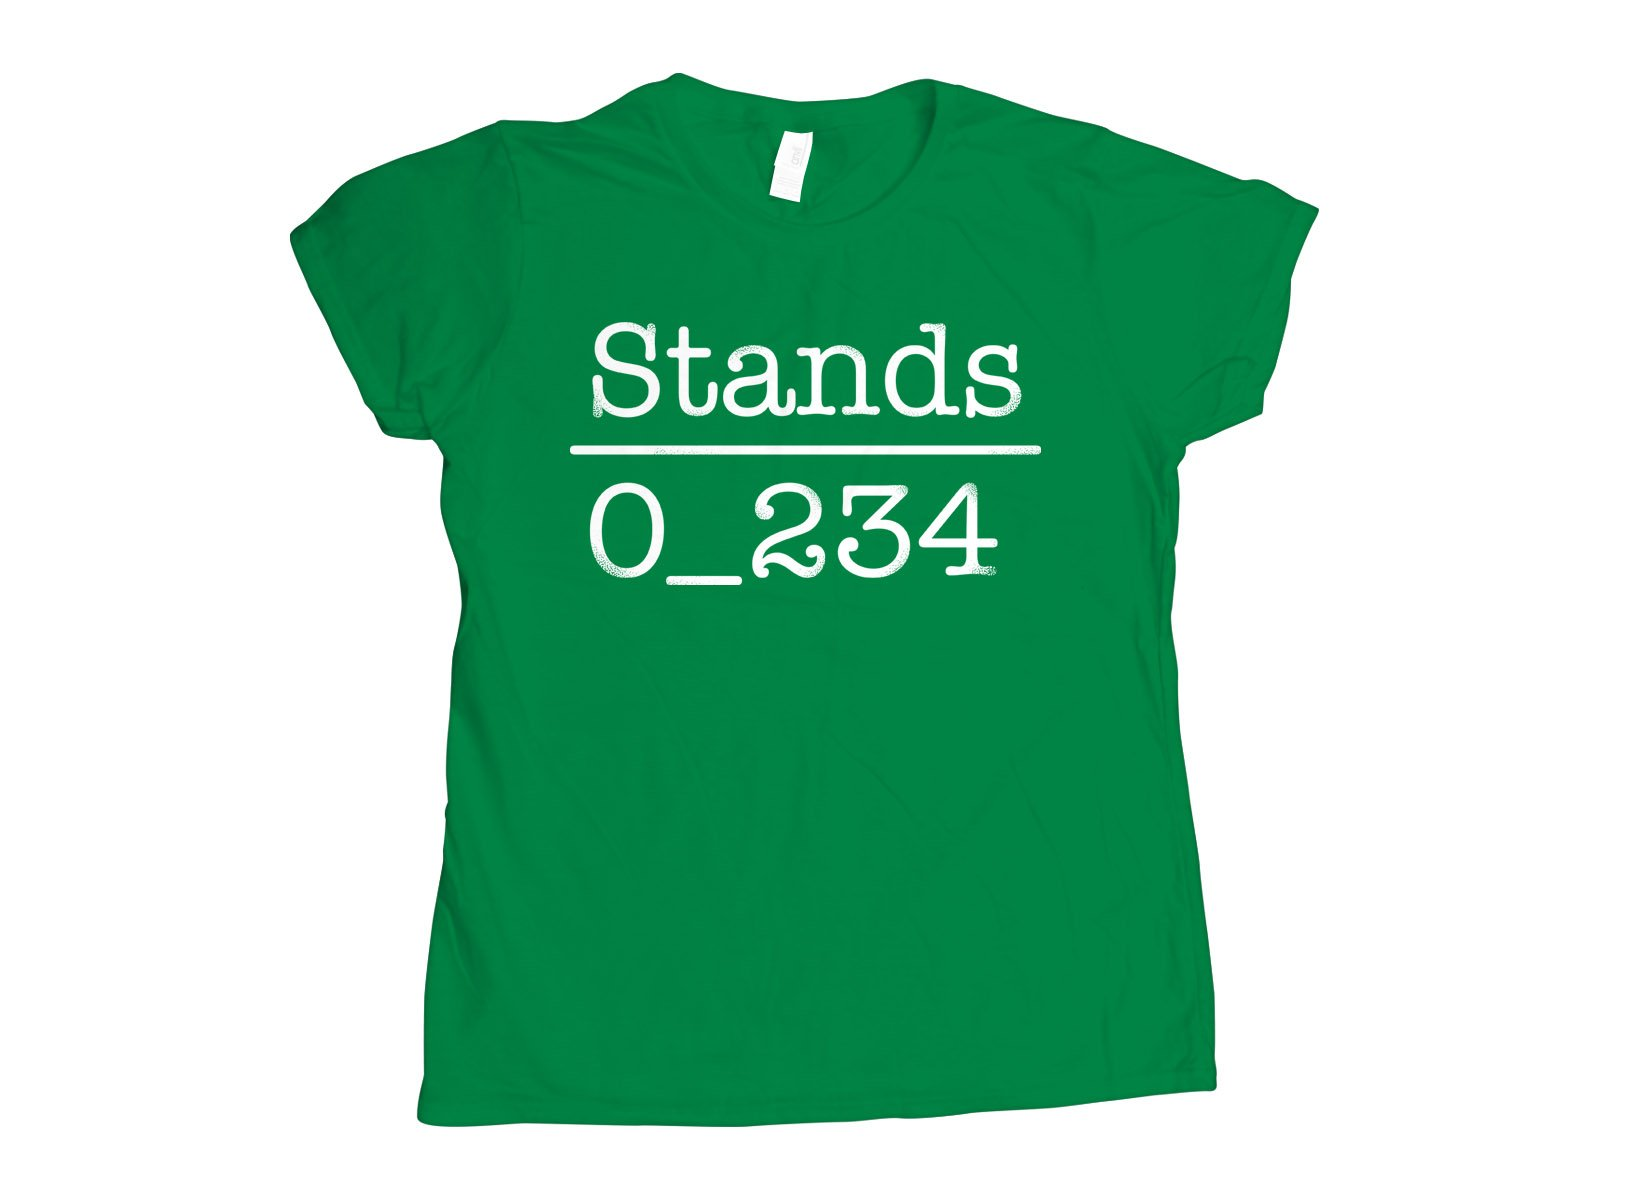 No 1 Under Stands on Womens T-Shirt